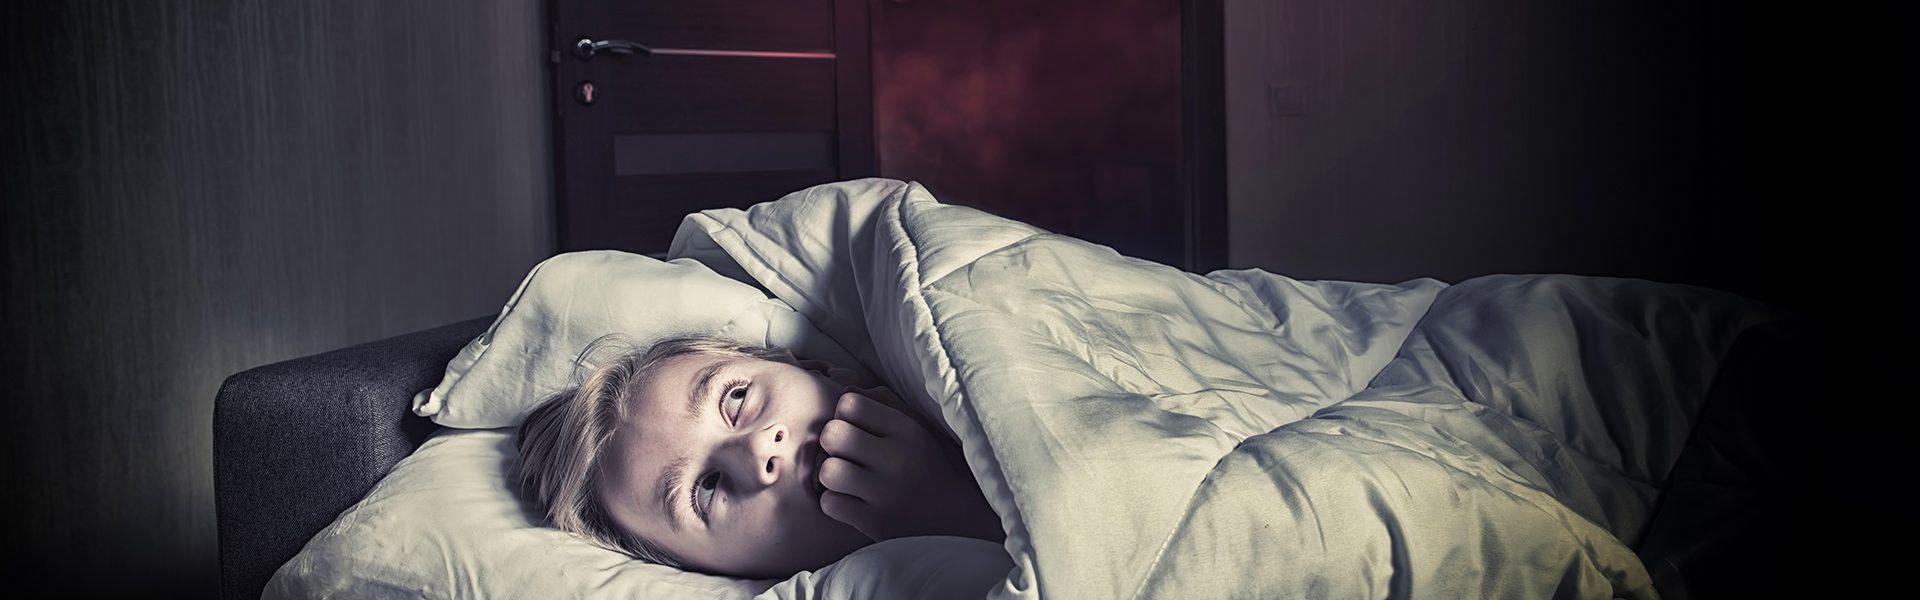 kids hiding under the covers in a dark bedroom